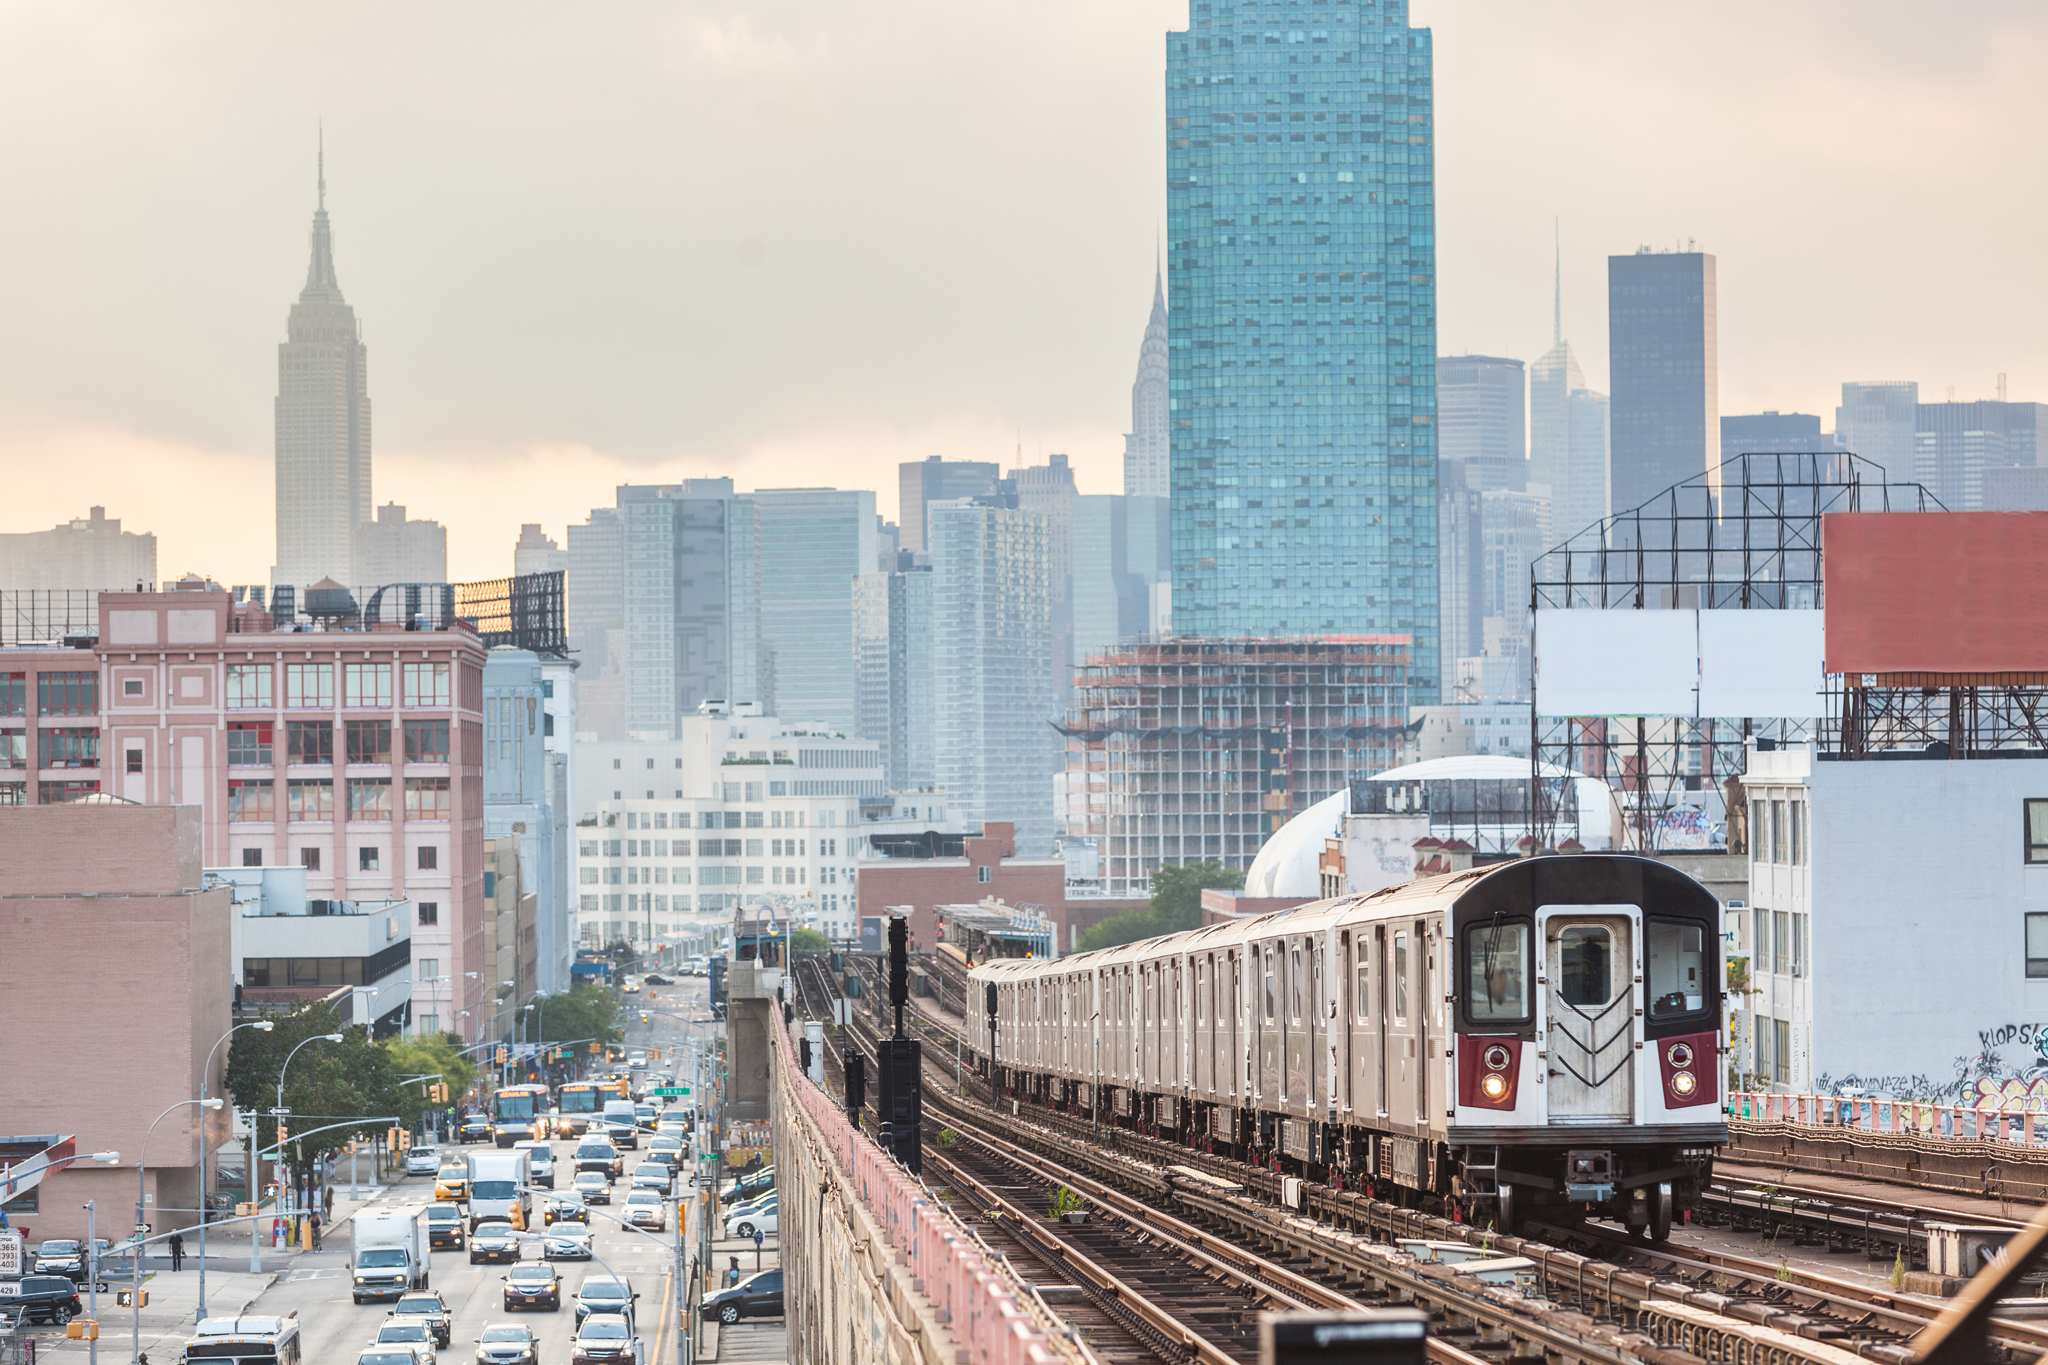 55 thoughts you'll have while riding the NYC subway